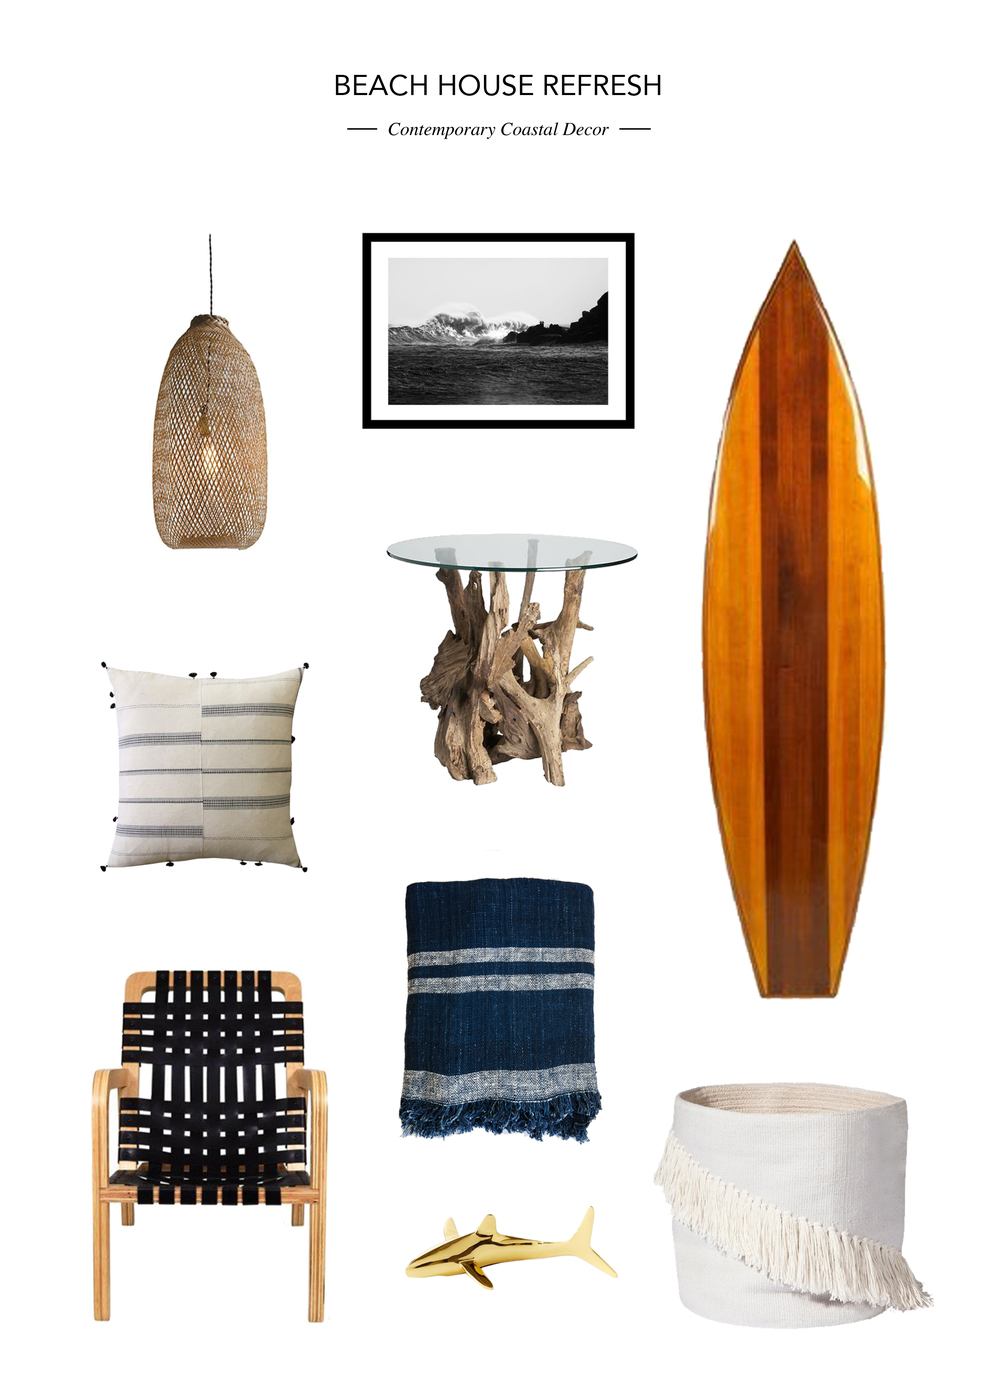 Lamp  //  Art  //  Surfboard  //  Pillow  //  Side Table  //  Chair  //  Blanket  //  Brass Shark  //  Basket